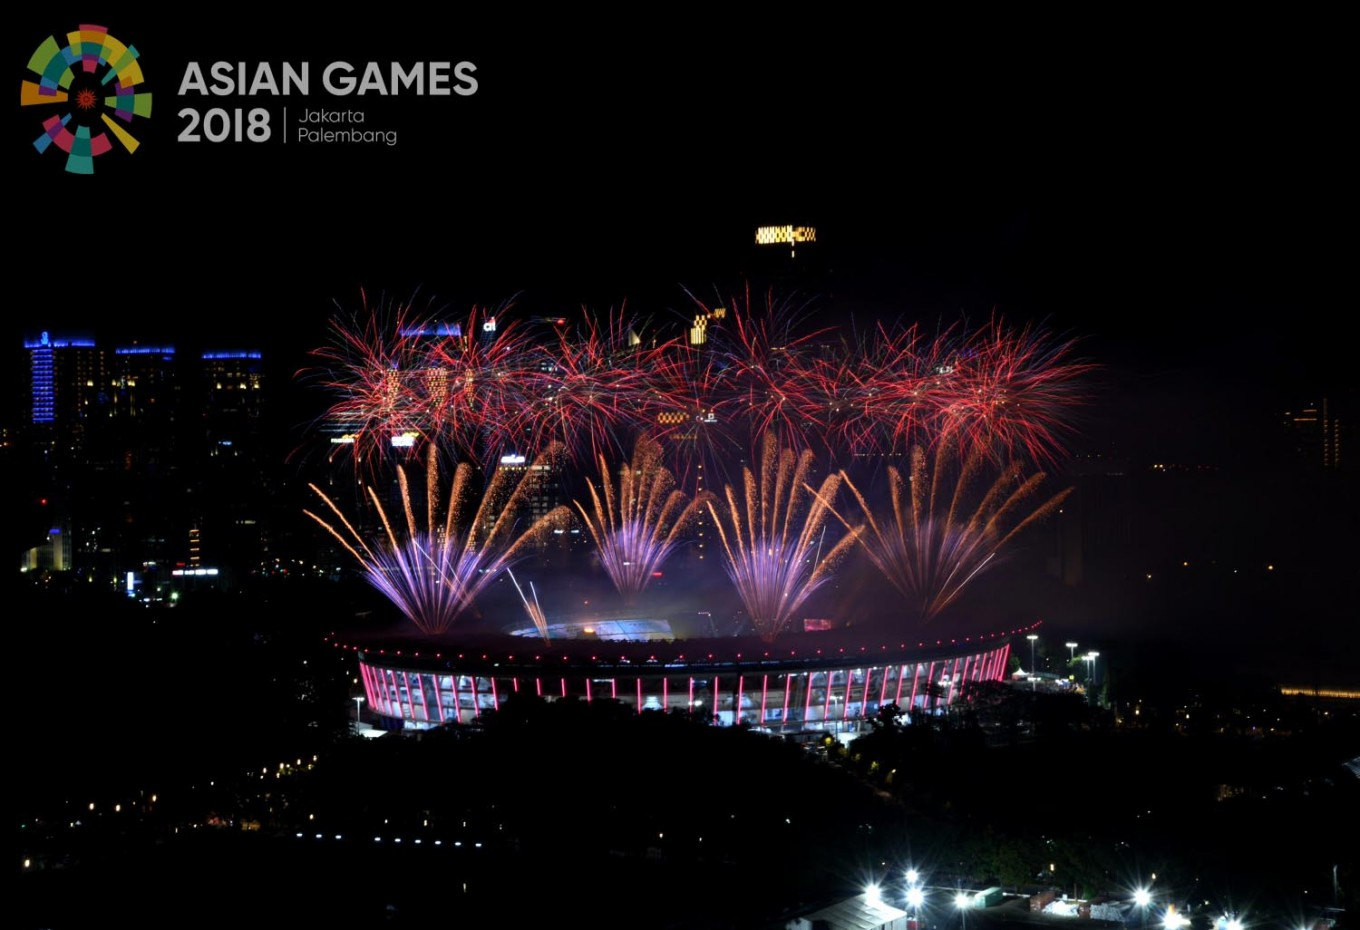 Fireworks explode over the Gelora Bung Karno Stadium during the opening ceremony of the 2018 Asian Games in Jakarta on Saturday, August.18. JP/ Wendra Ajistyatama